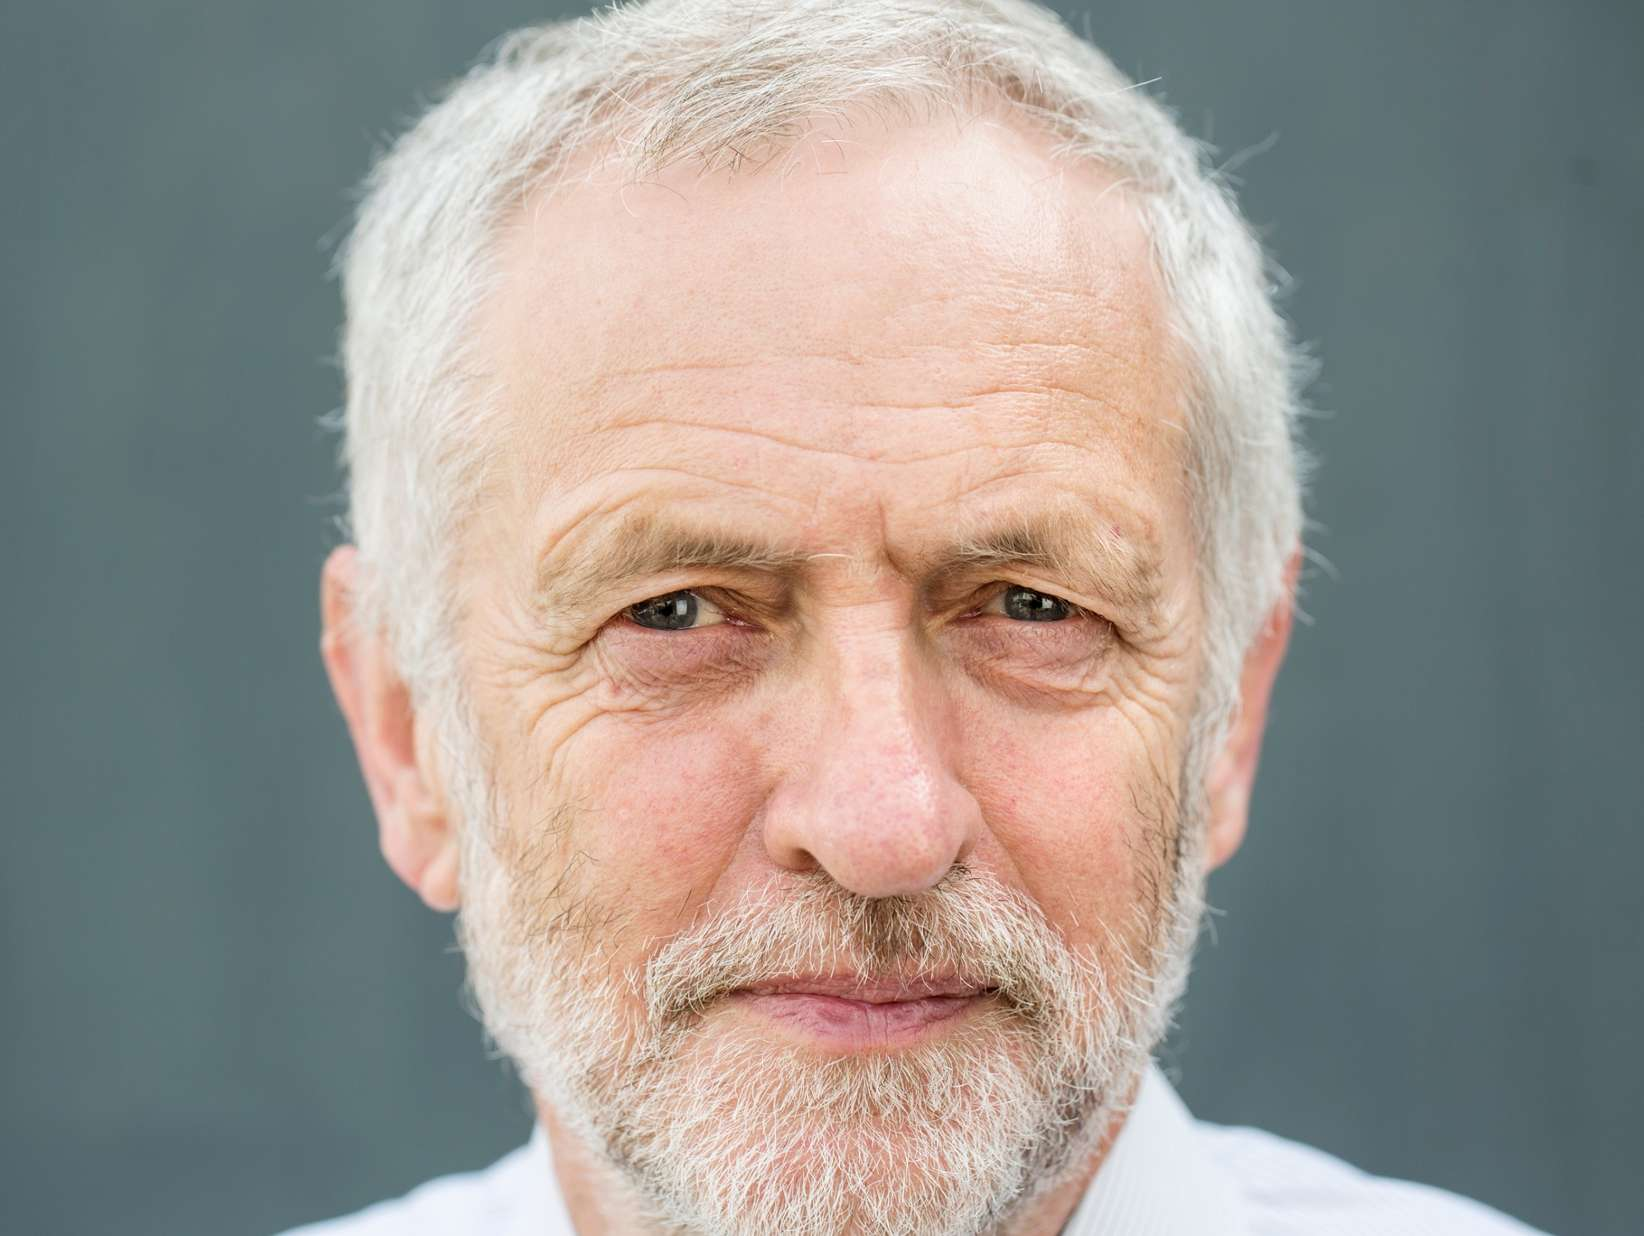 Reasons to vote for Jeremy Corbyn to be leader of the Labour party